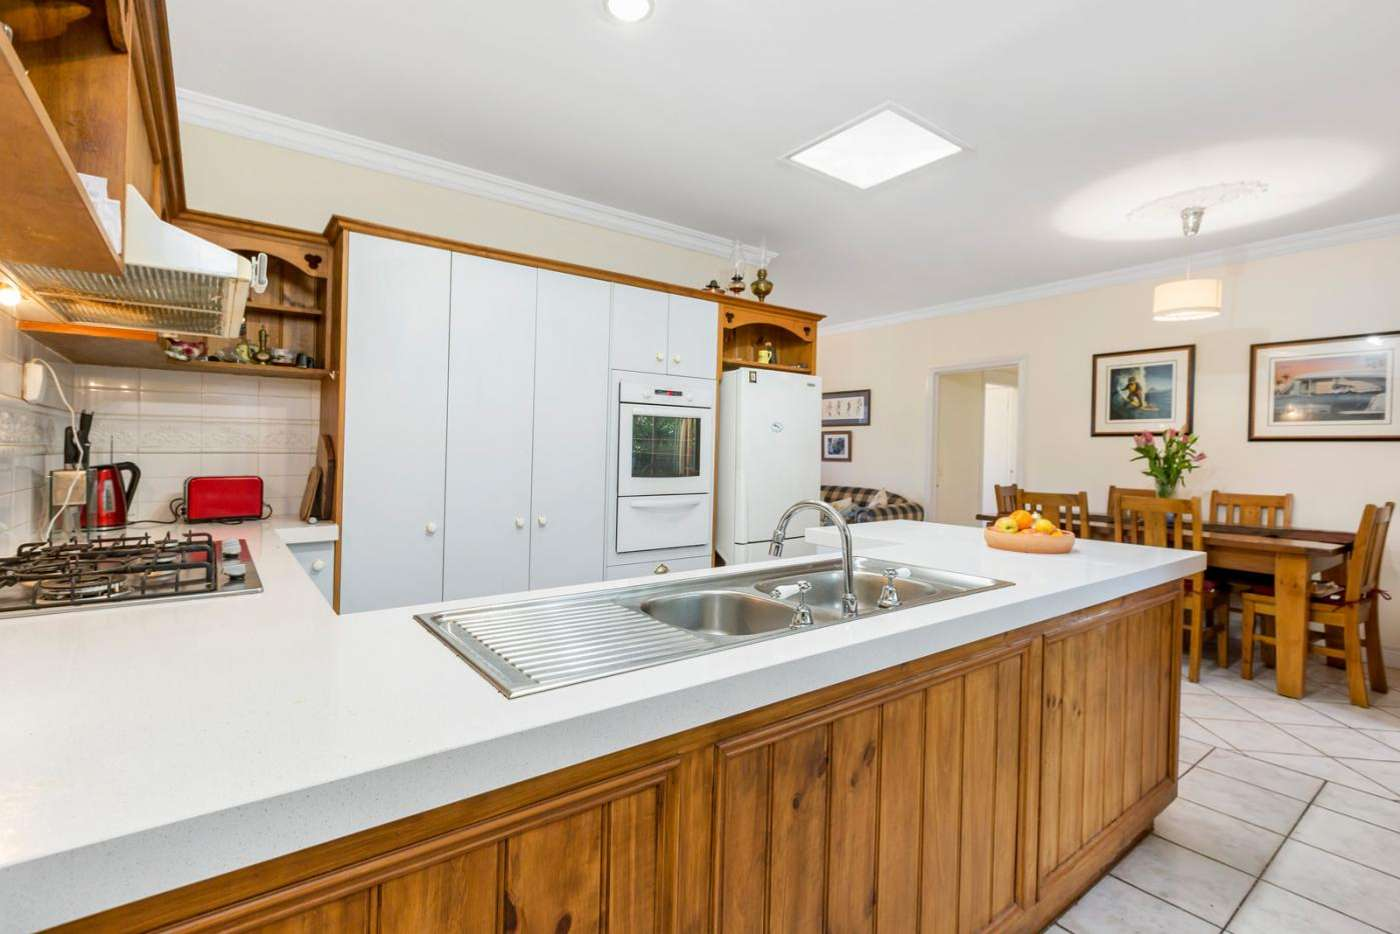 Fifth view of Homely house listing, 7 Eagle Street, Mornington VIC 3931